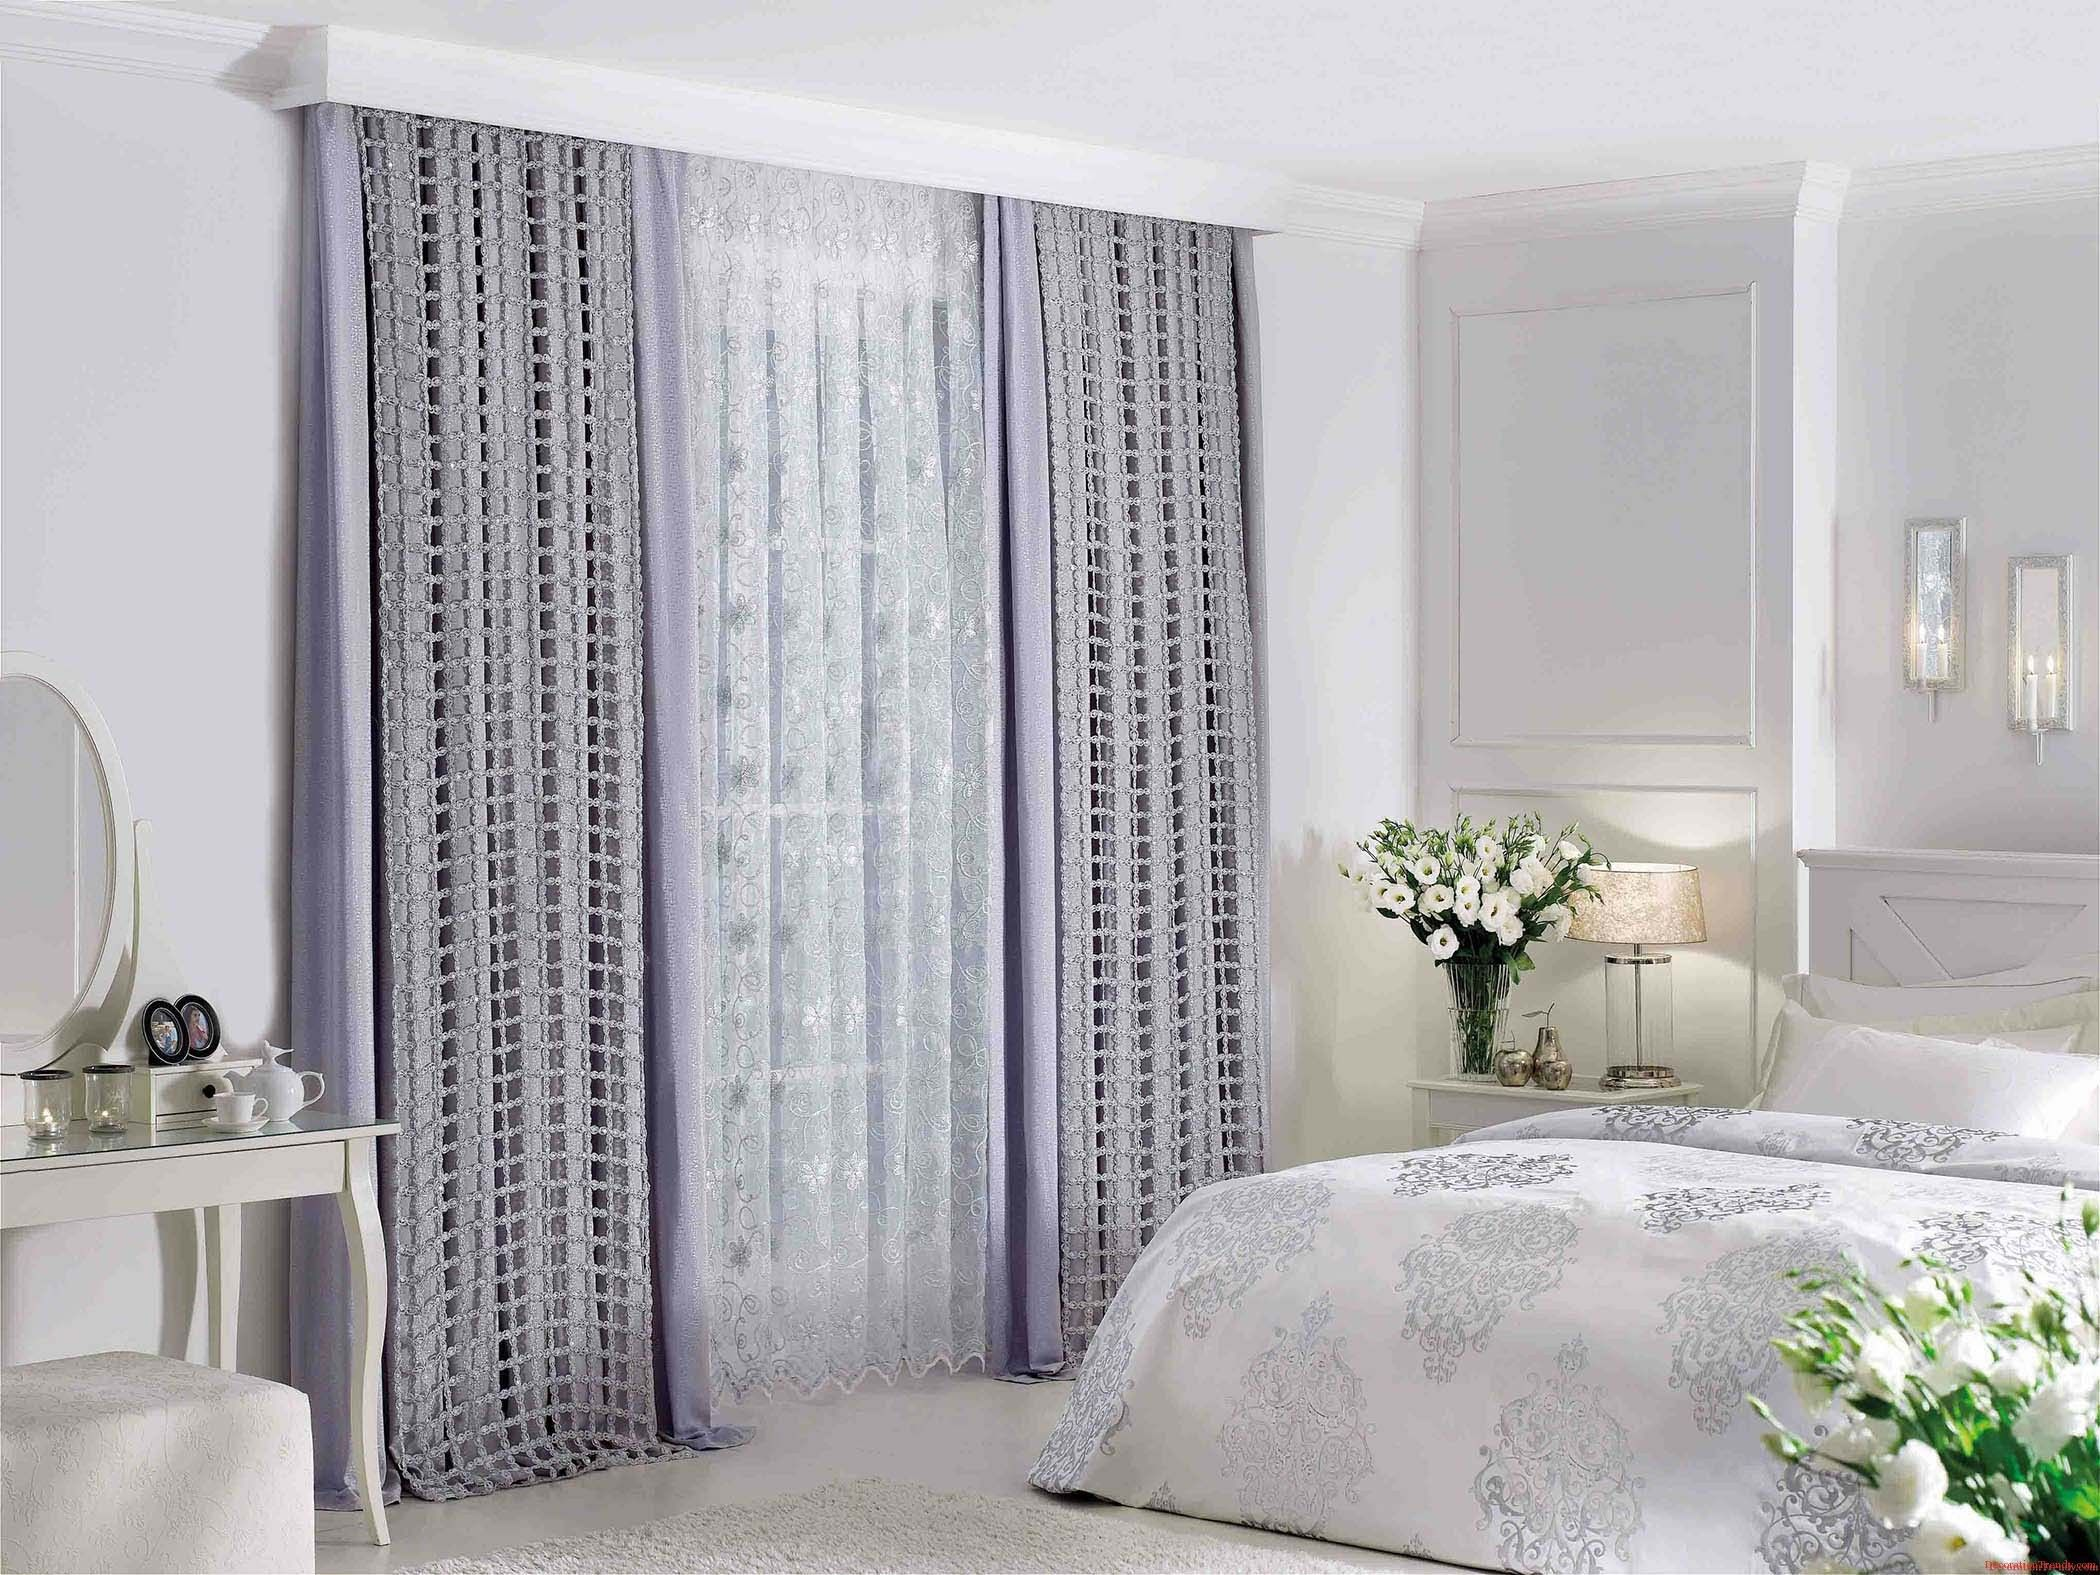 Bedroom curtains designs - Latest Curtain Designs New Living Room Curtains